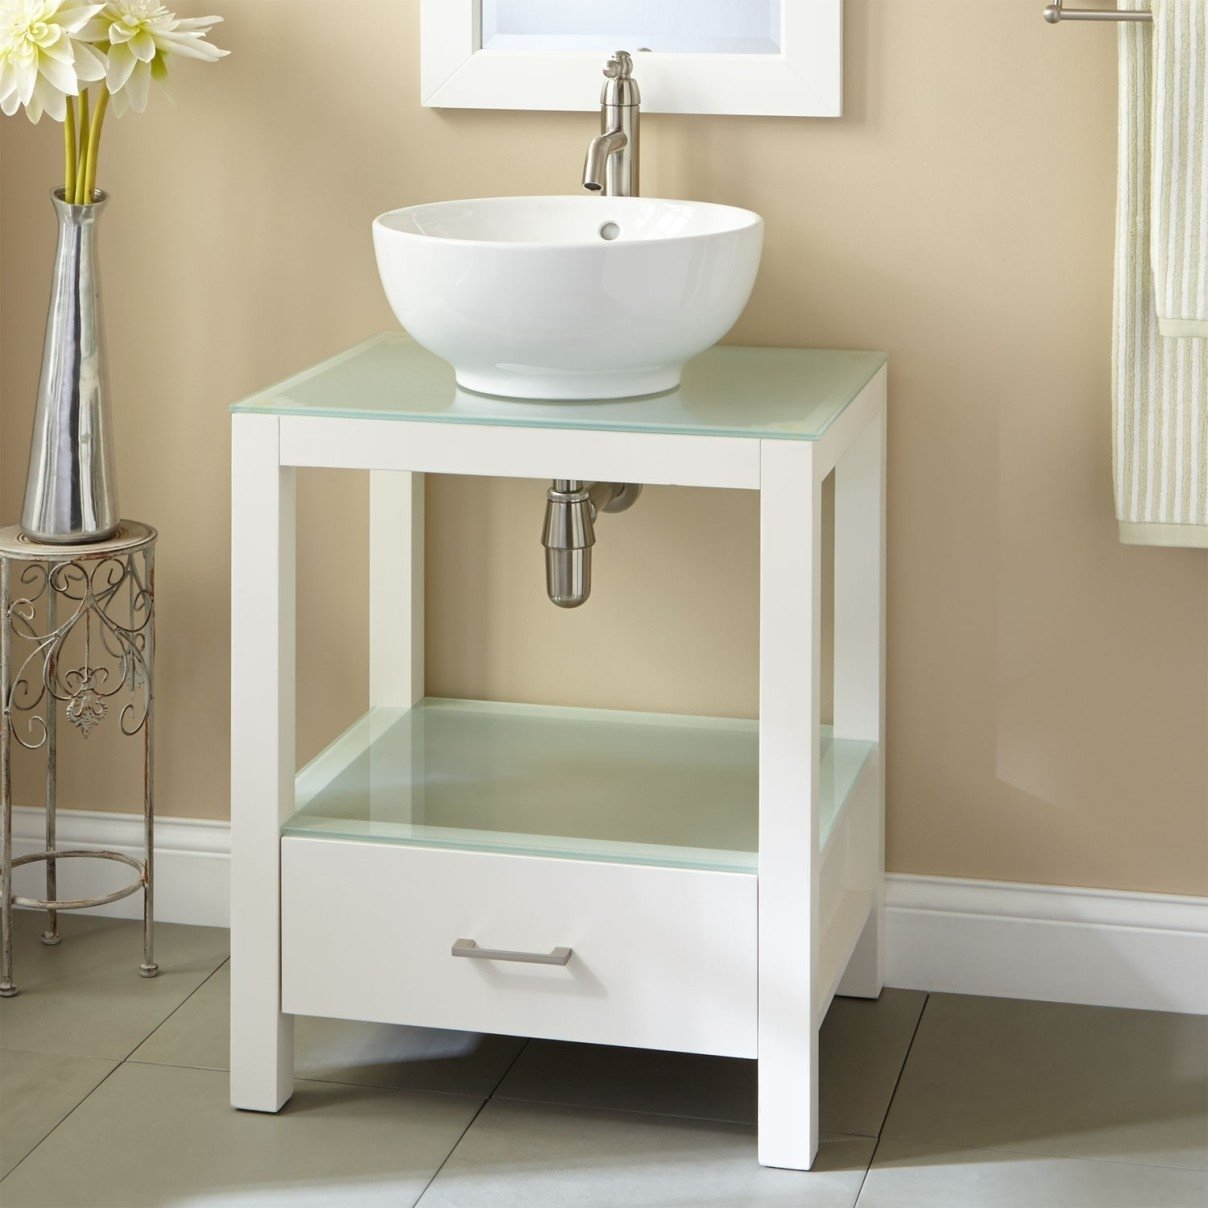 Beautiful Small Sink Vanity Full Size Of Bathroom Sinkvessel Sinks Ada In with Review Small Sinks For Small Bathrooms